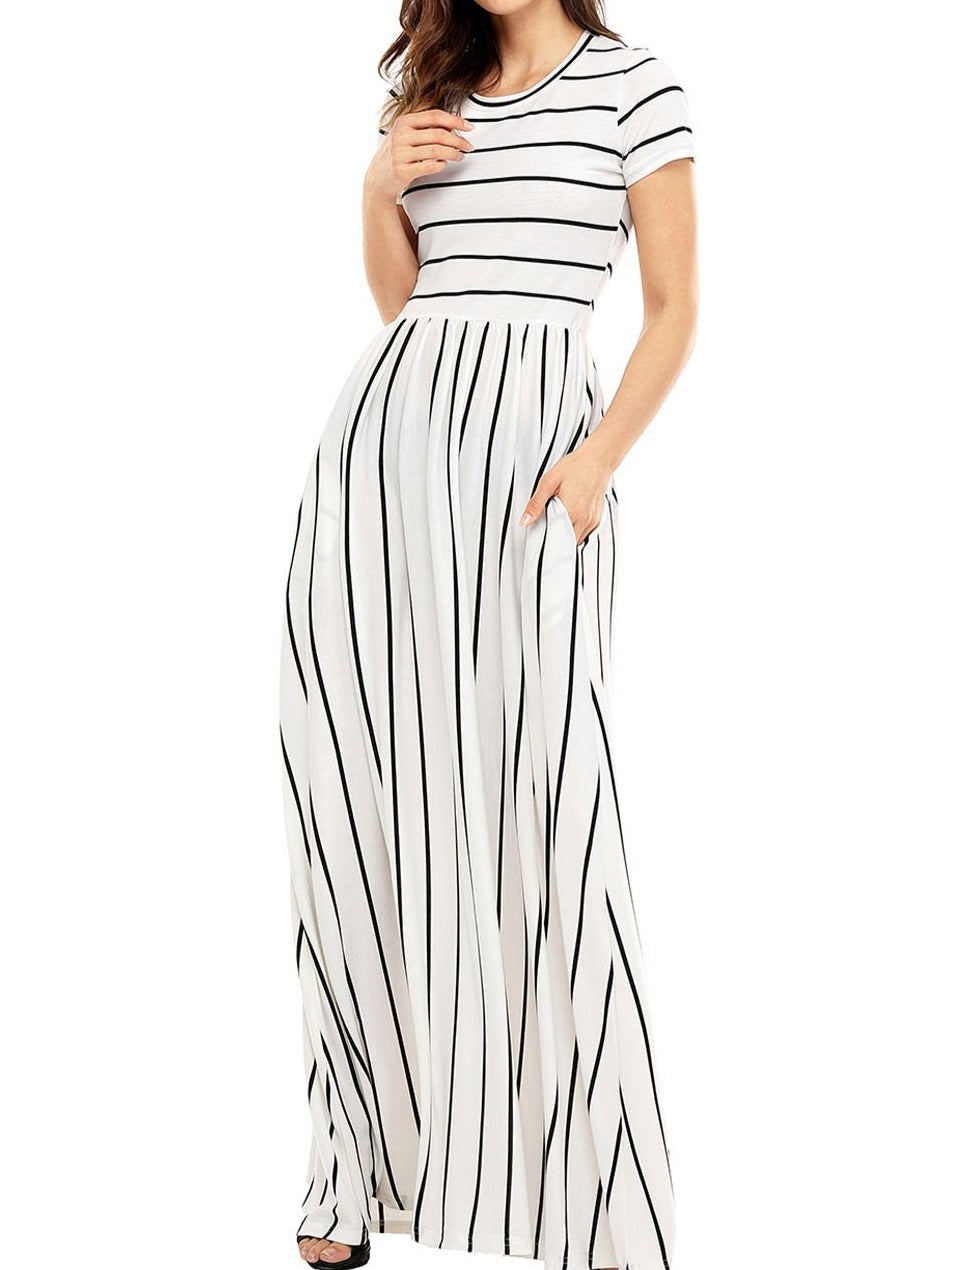 Black Striped White Short Sleeve Maxi Dress